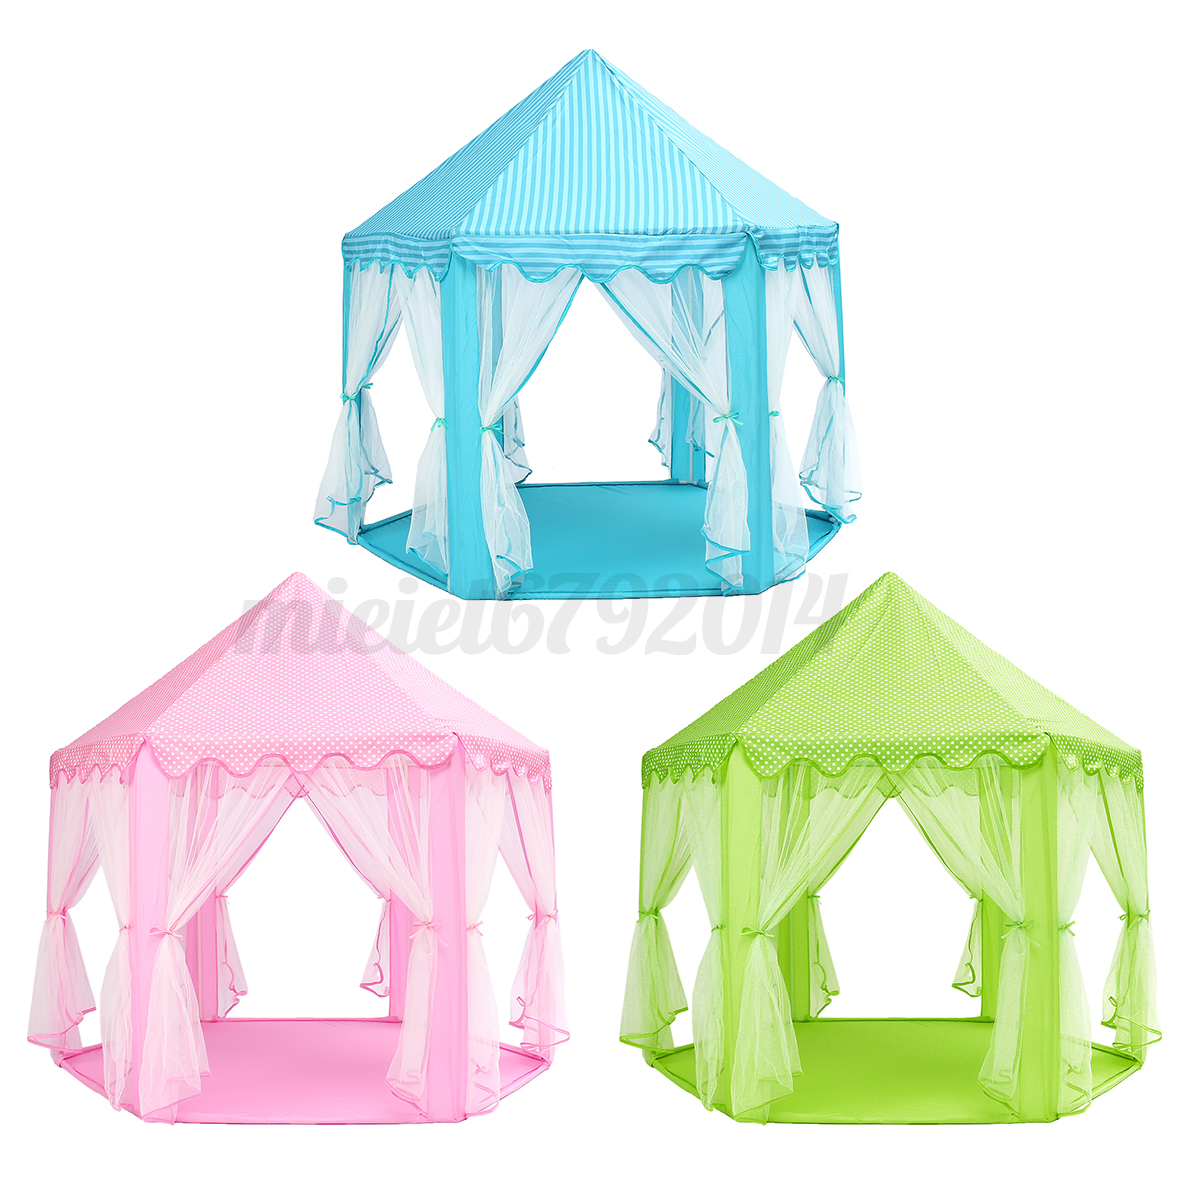 portable girls pink princess castle play tent activity fairy house fun playhouse ebay. Black Bedroom Furniture Sets. Home Design Ideas